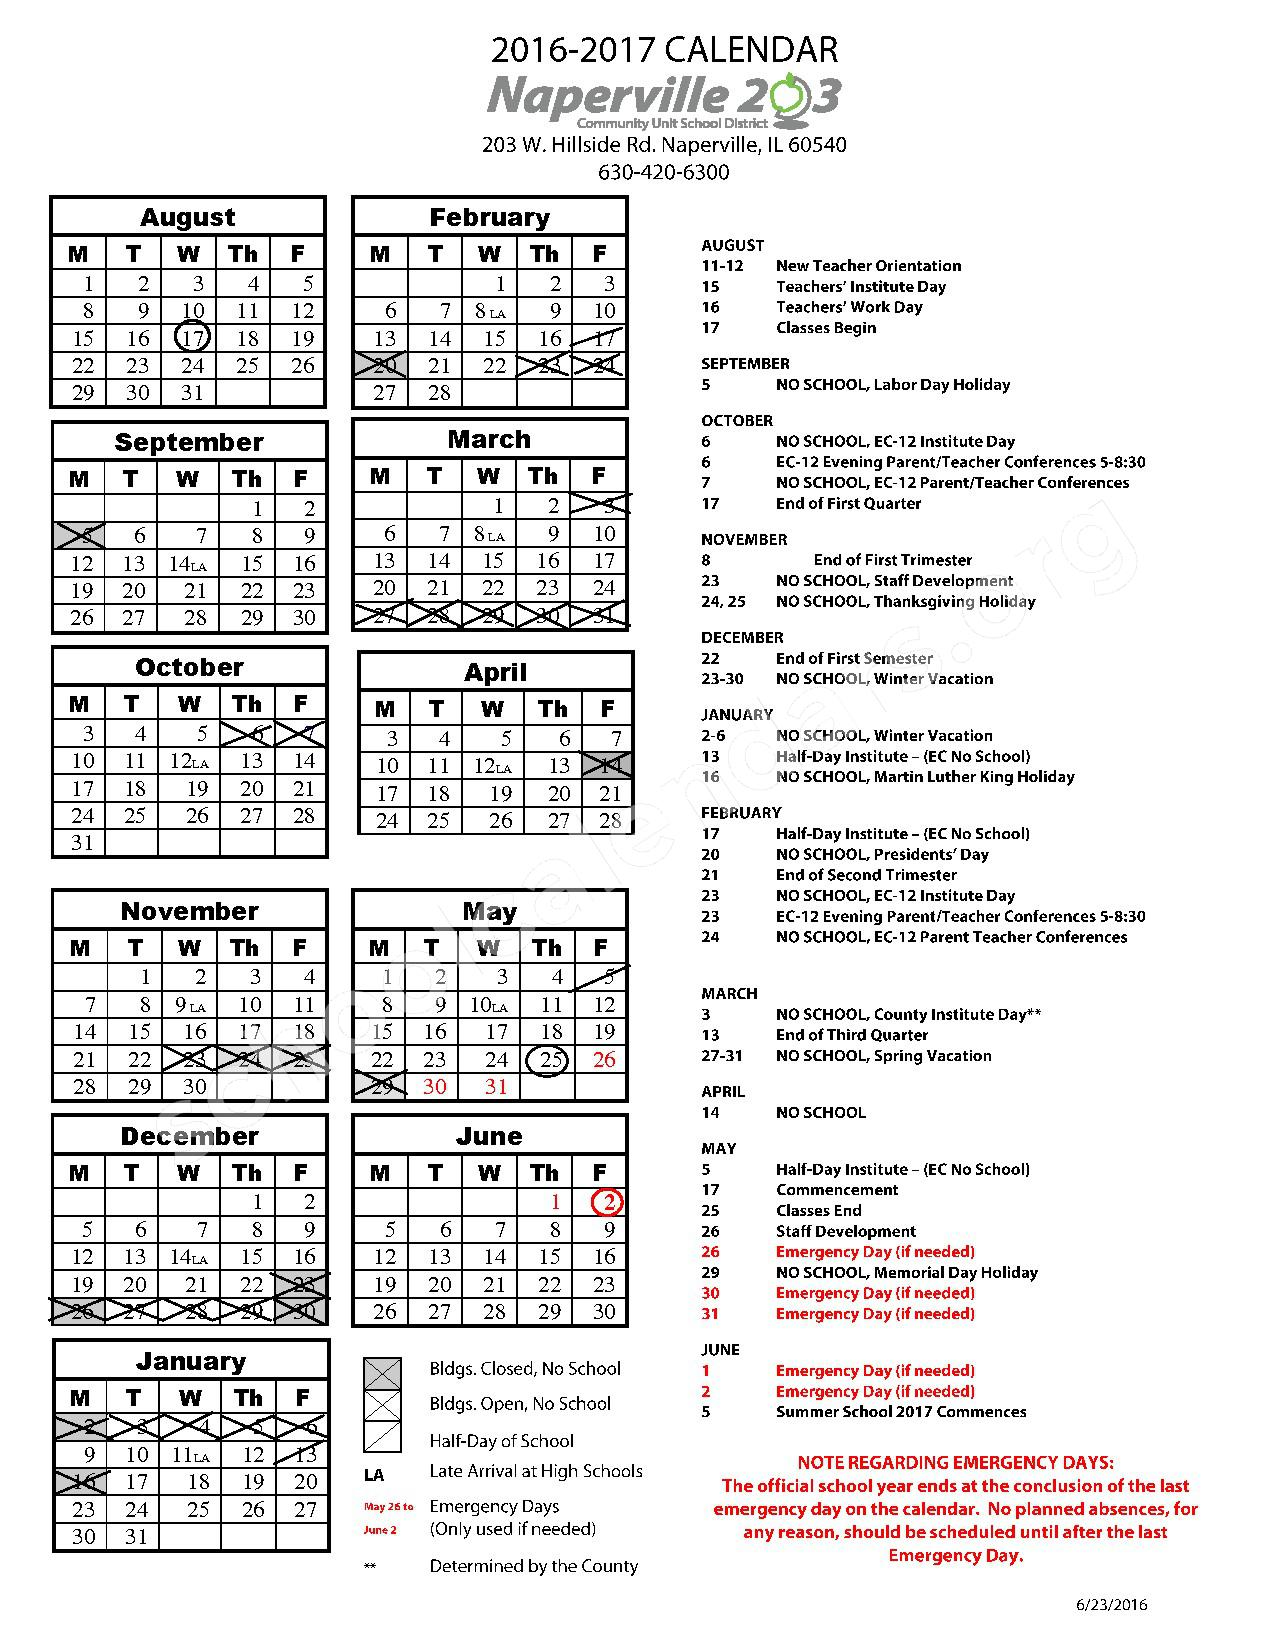 2016 - 2017 School Year Calendar – Maplebrook Elementary School – page 1